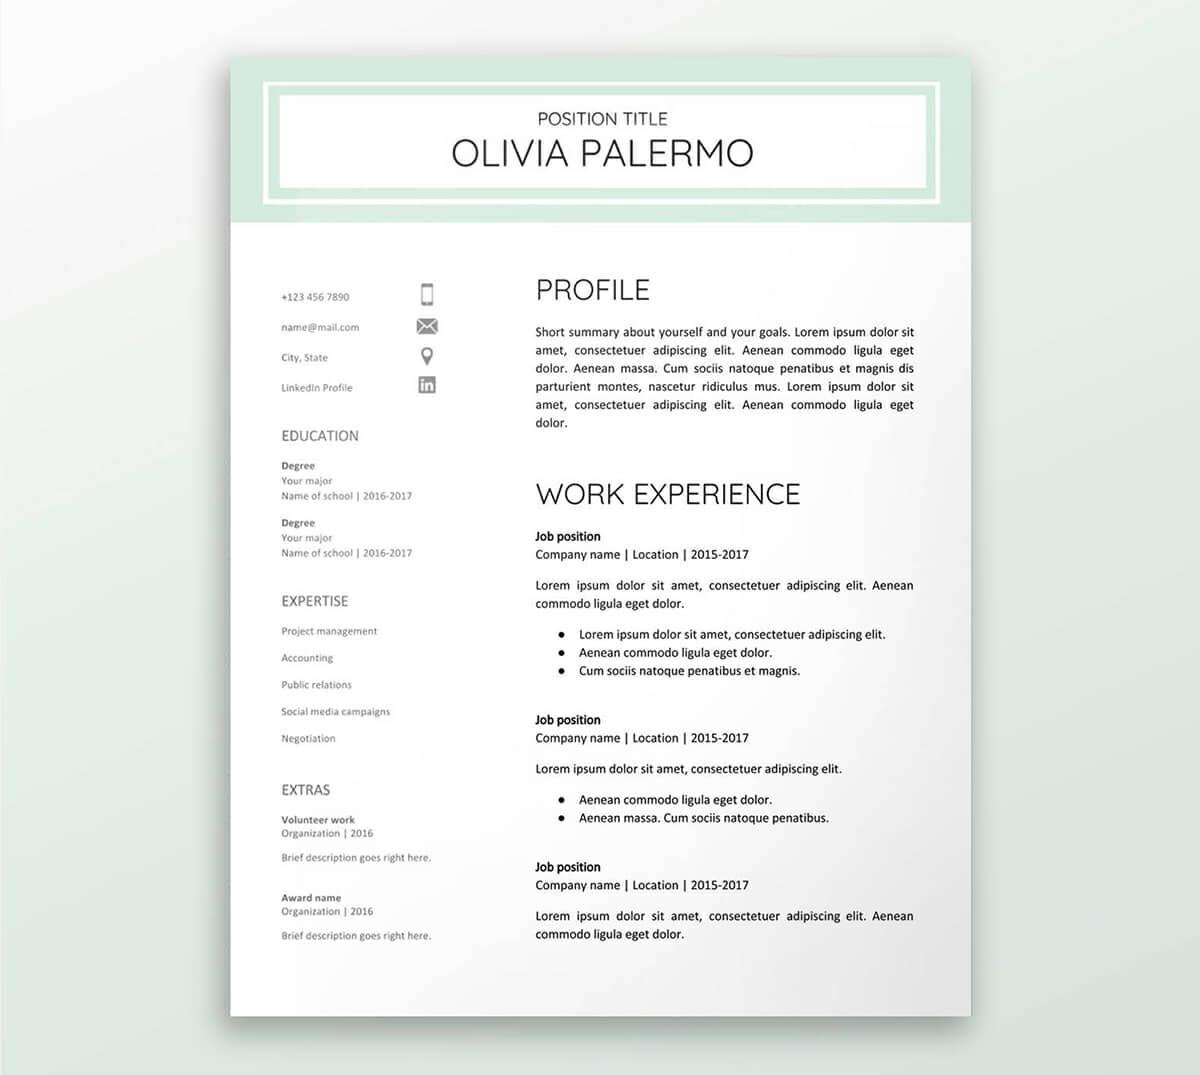 green google documents resume template - How To Make A Resume On Google Docs